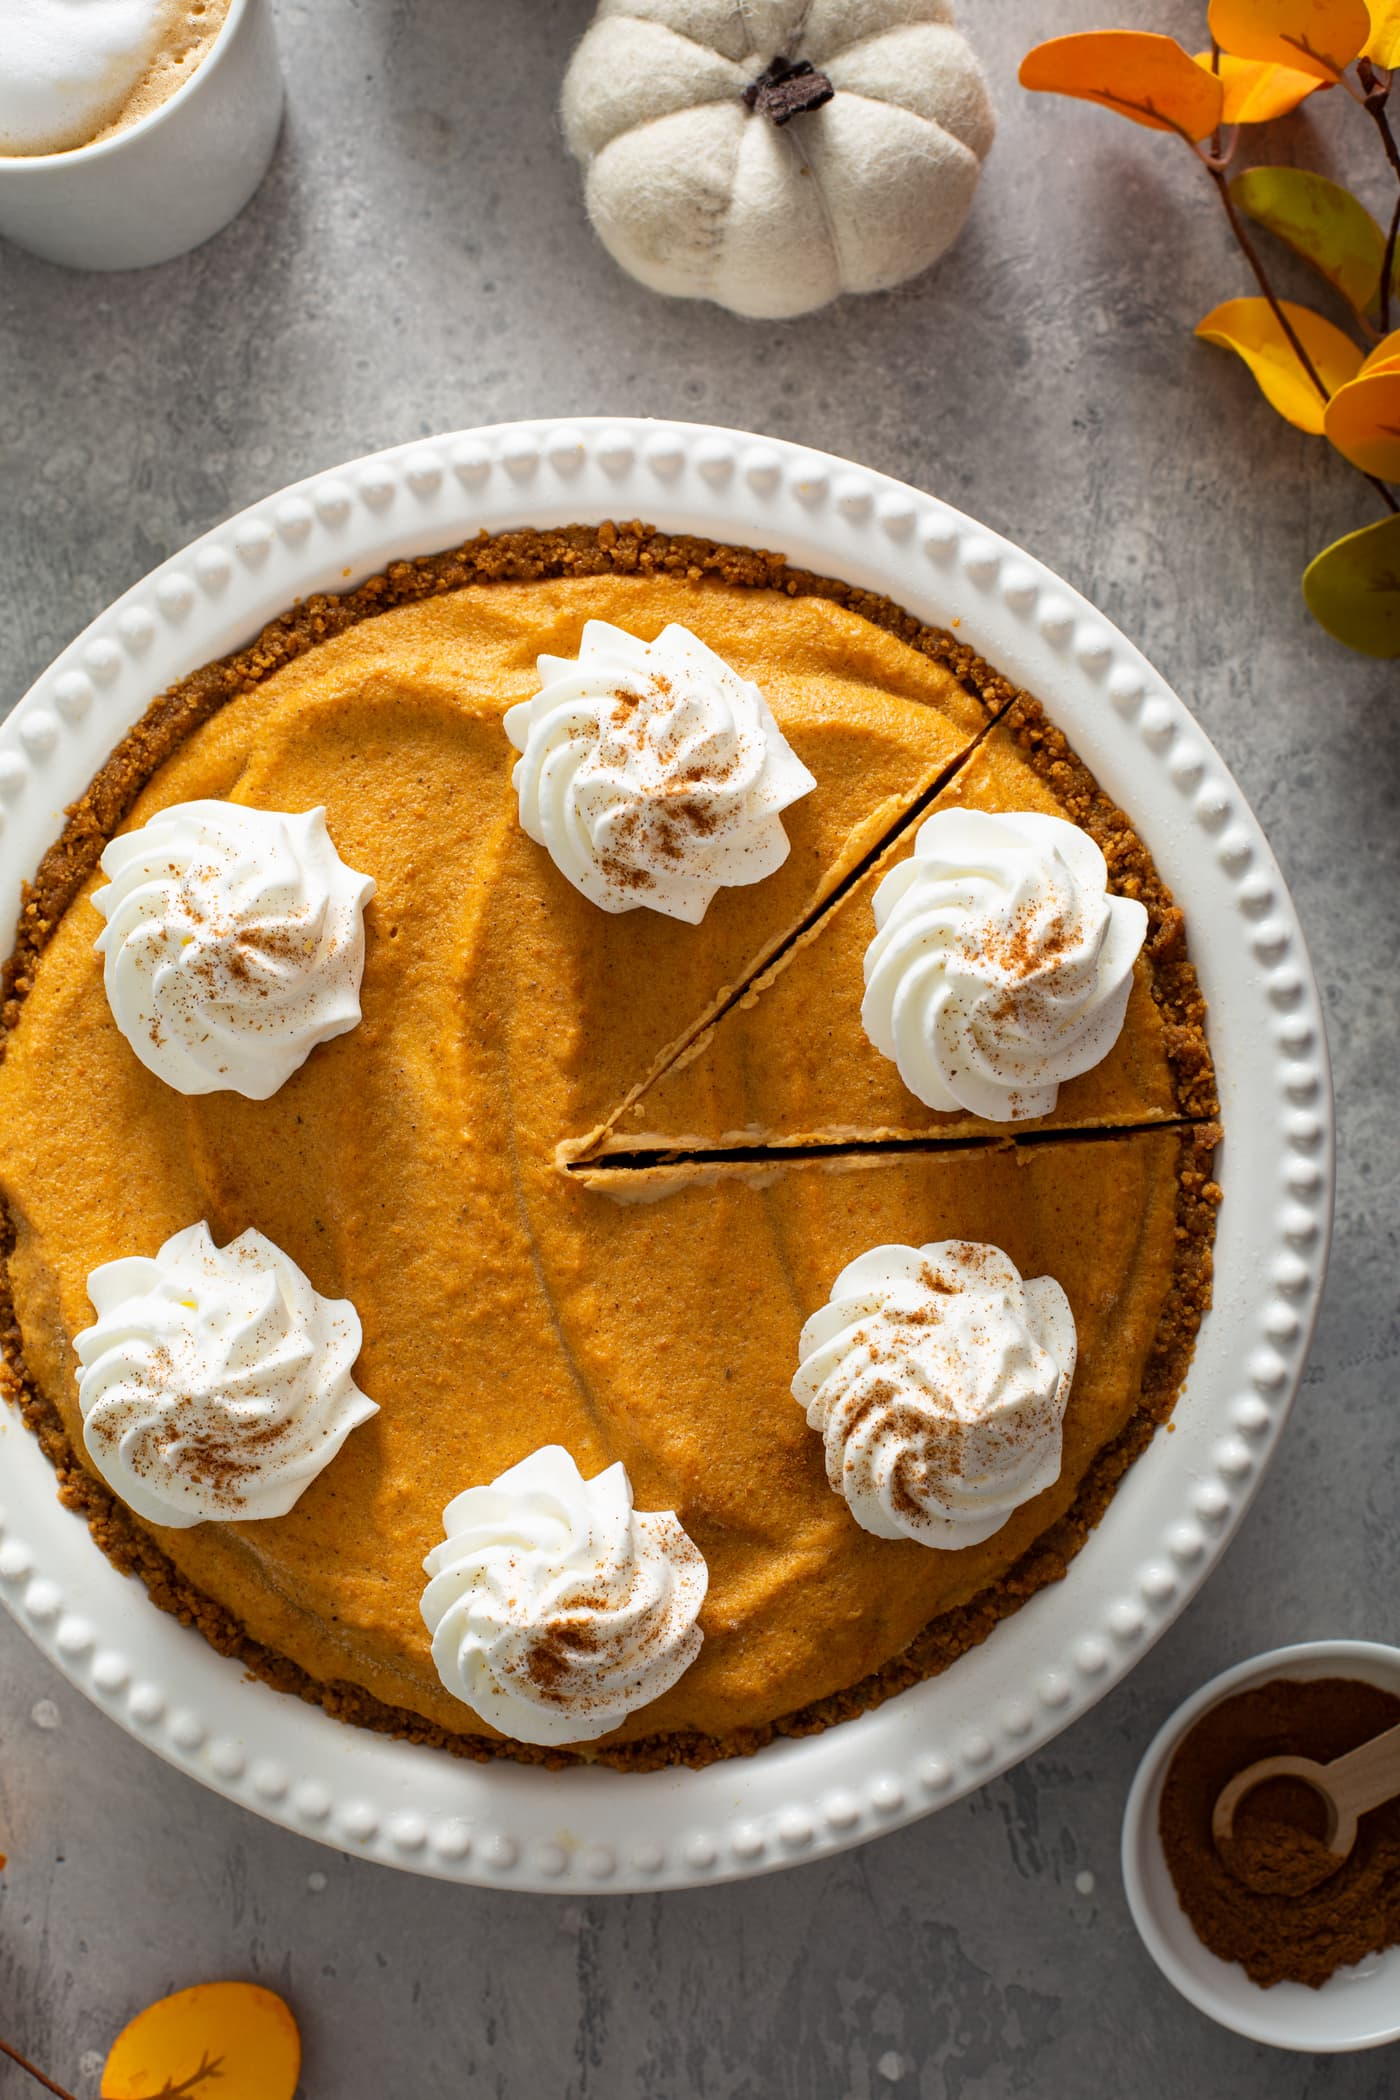 A whole pumpkin ice cream pie in a white pie dish. The pie has dollops of whipped cream sprinkled with cinnamon on top. A piece of pie has been cut but not removed from the dish. A small bowl of cinnamon, a tiny white pumpkin, and a mug of hot cocoa are in the background.